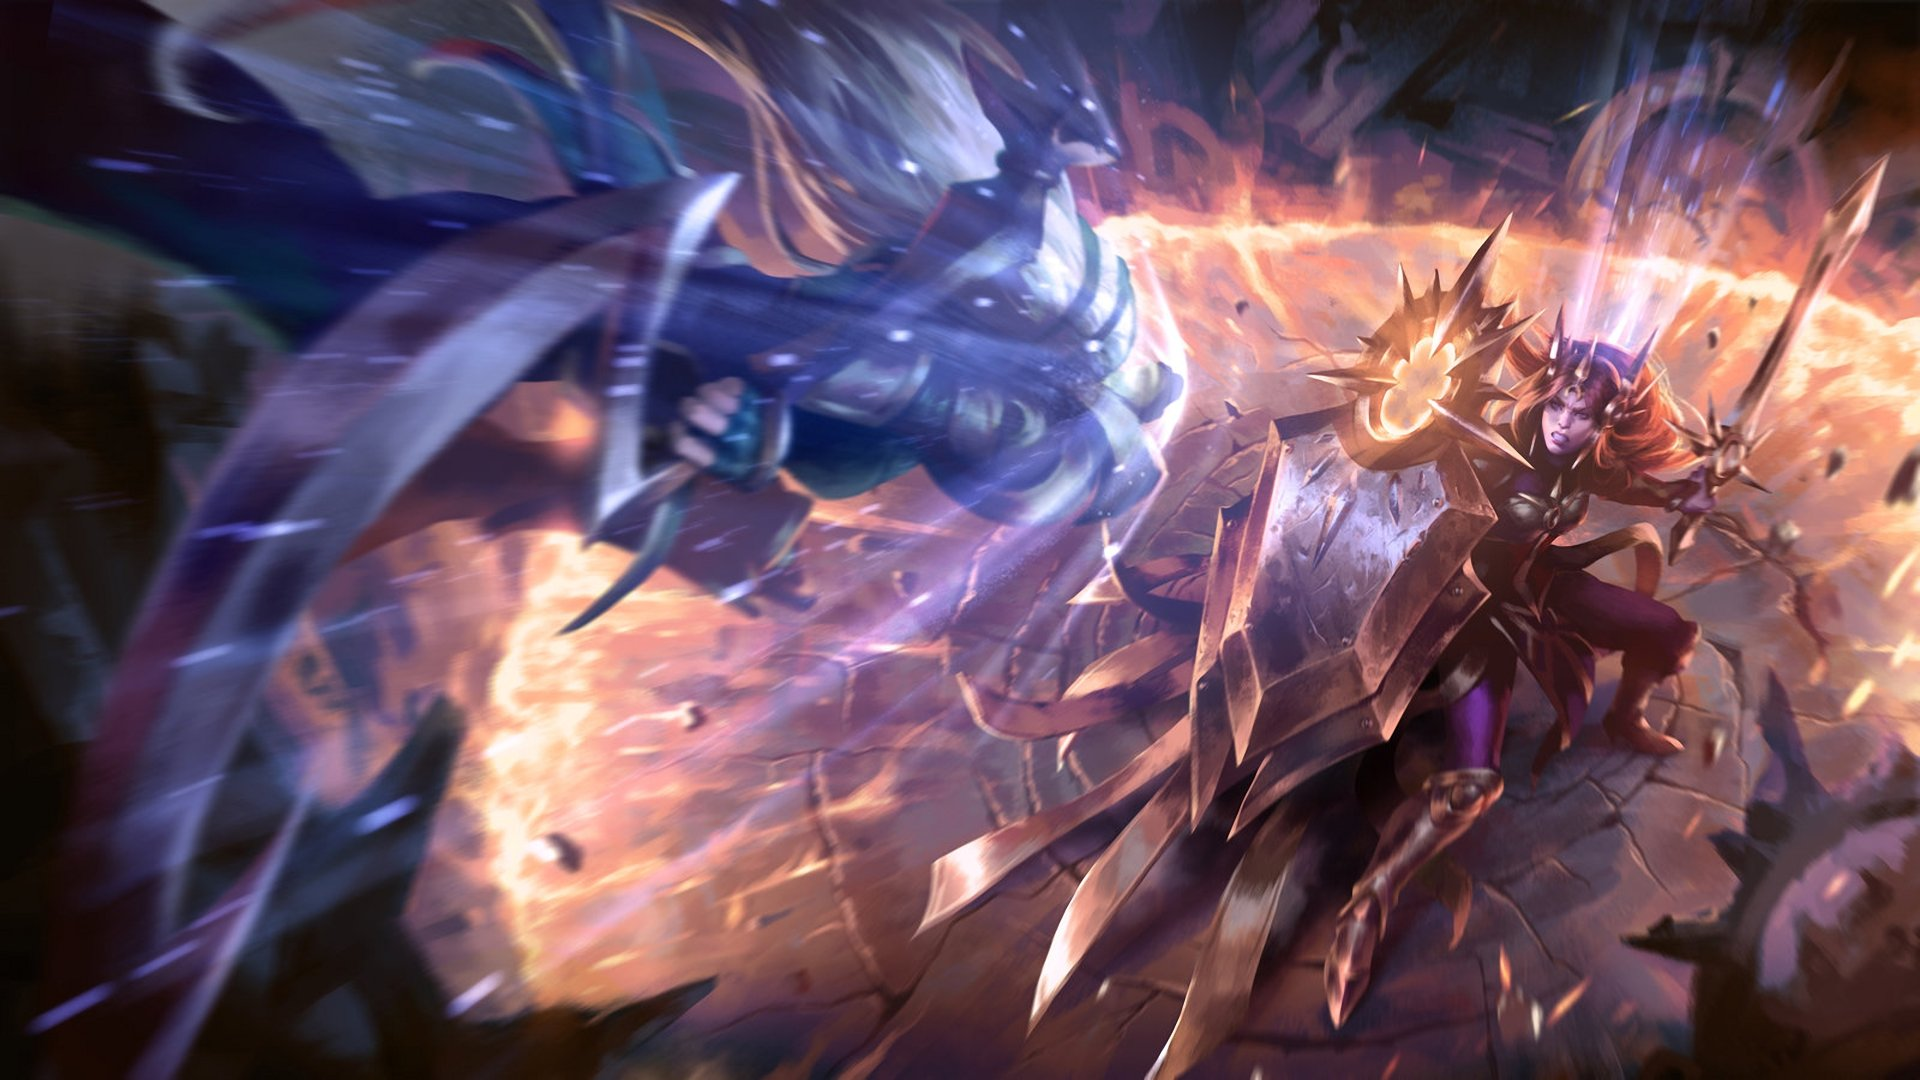 Awesome League Of Legends (LOL) free wallpaper ID:170903 for hd 1920x1080 computer